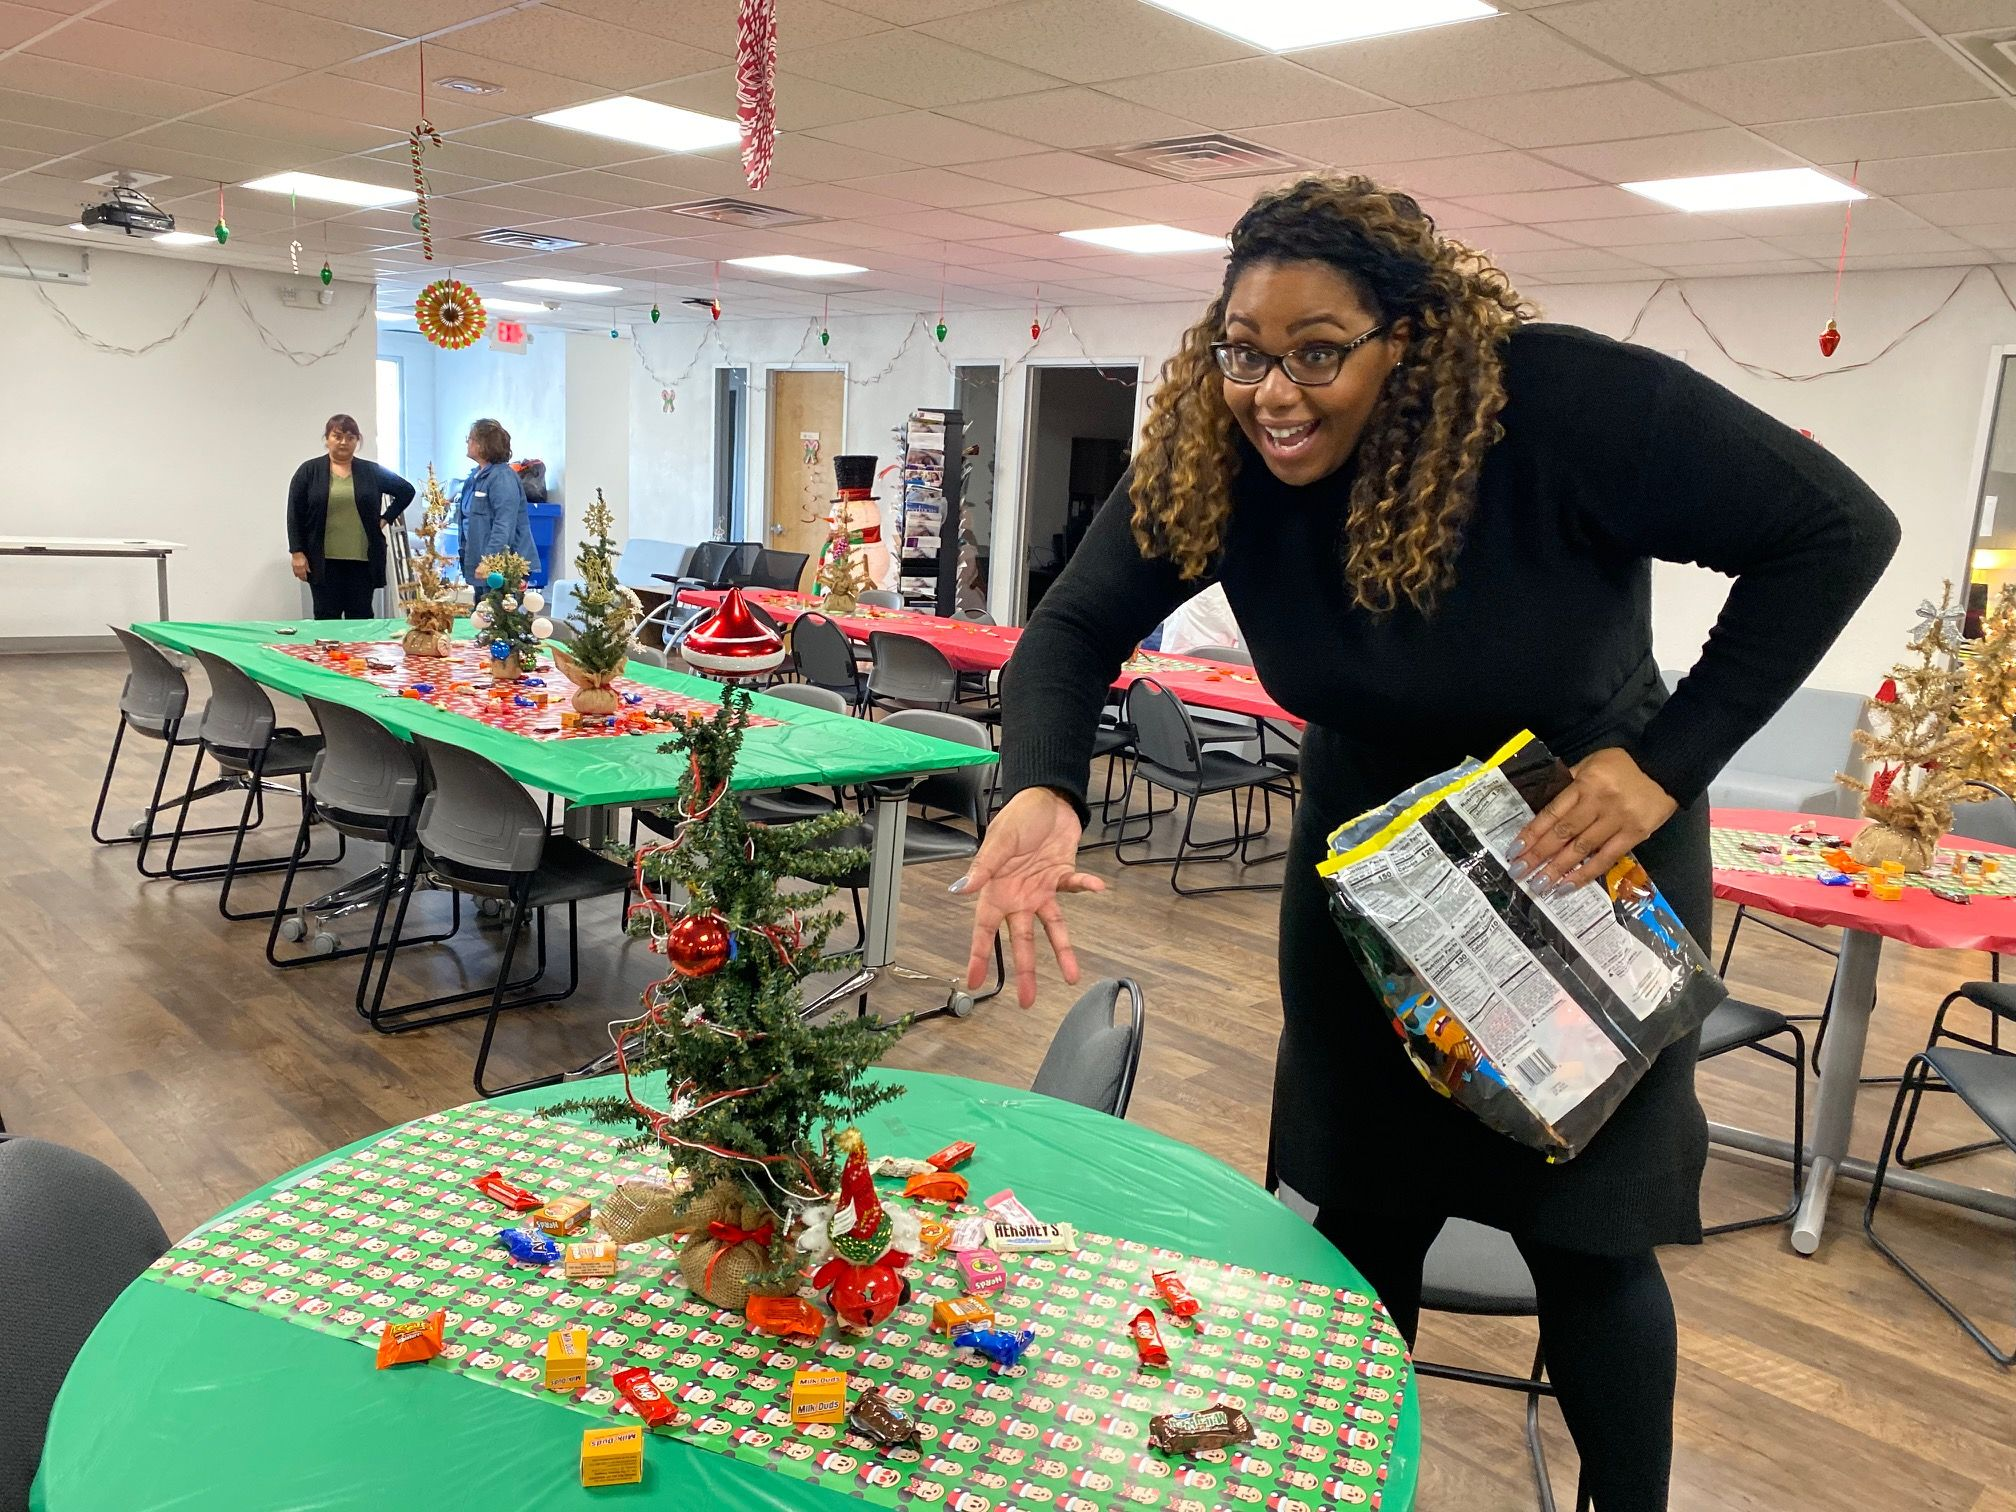 A volunteer smiles while pointing at a miniature Christmas tree